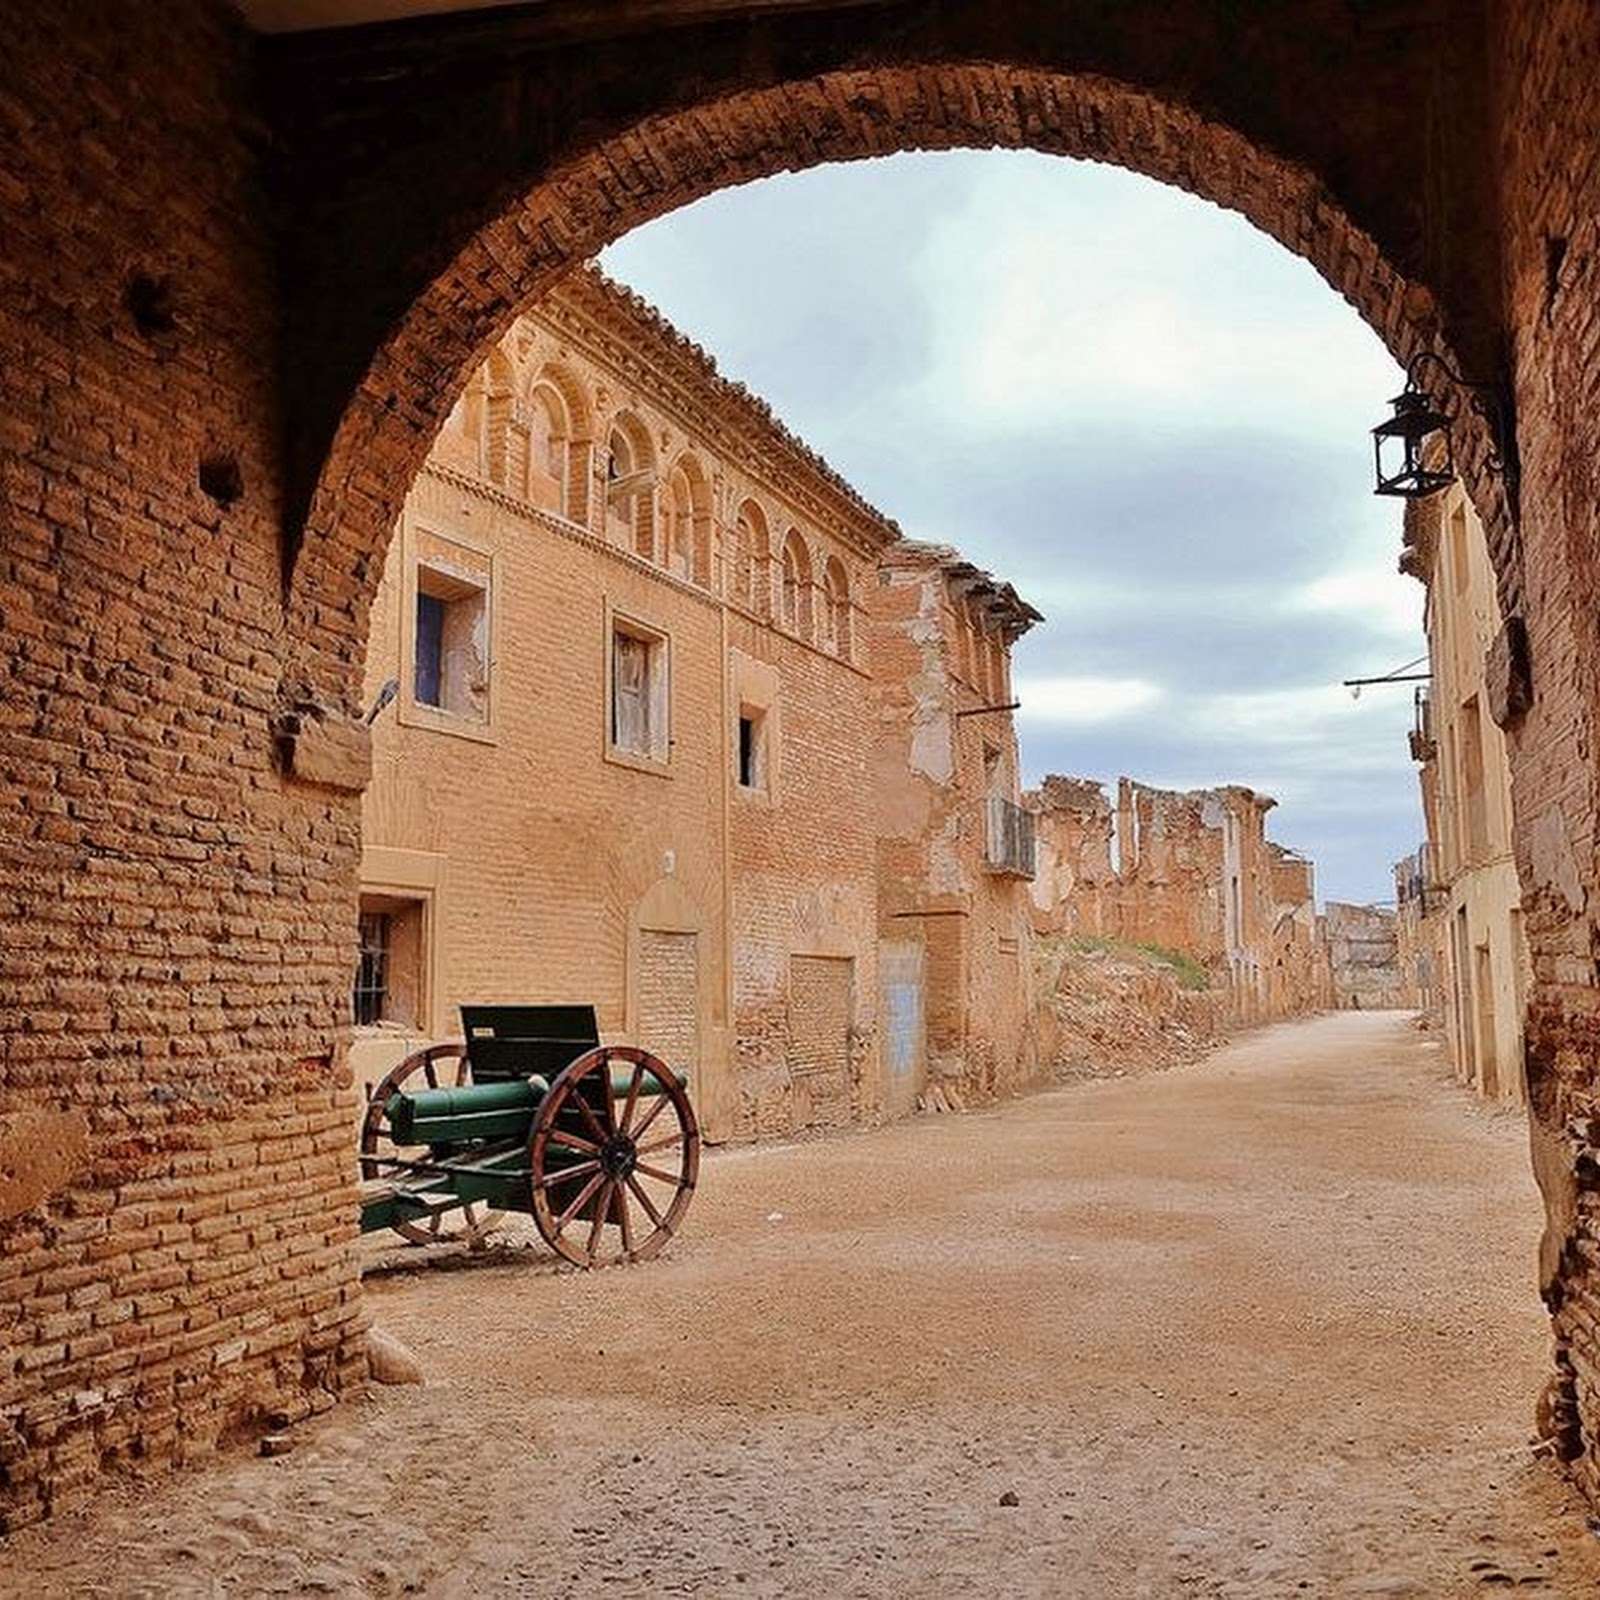 Belchite: The Ruins of The Spanish Civil War